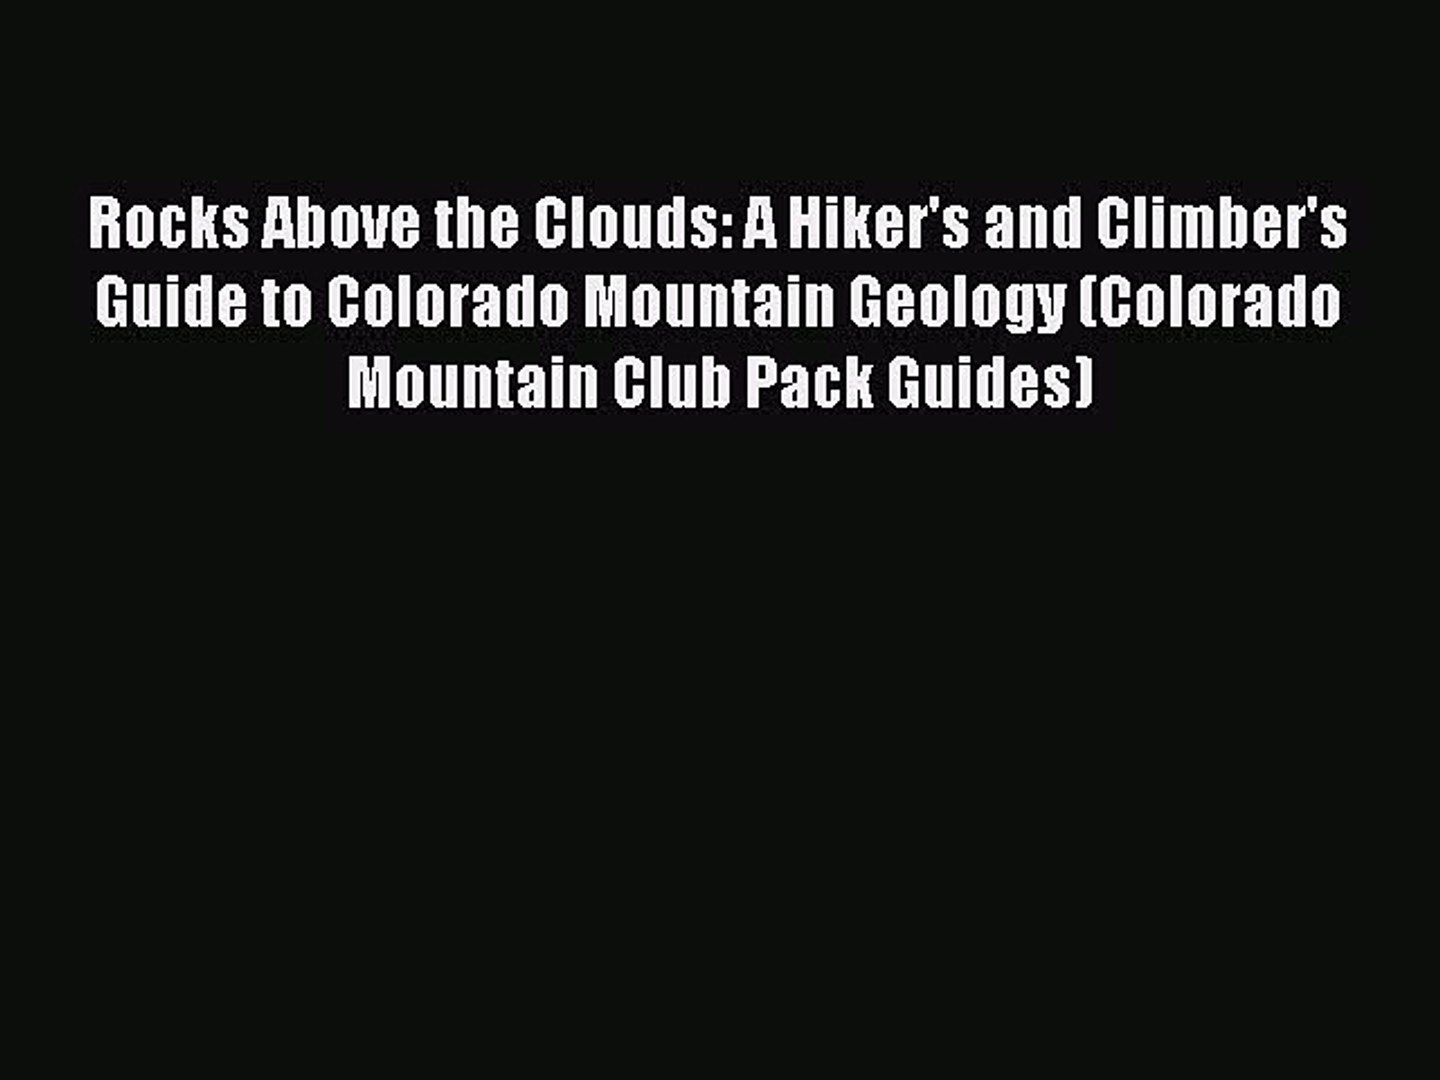 Read Rocks Above the Clouds: A Hiker's and Climber's Guide to Colorado Mountain Geology (C